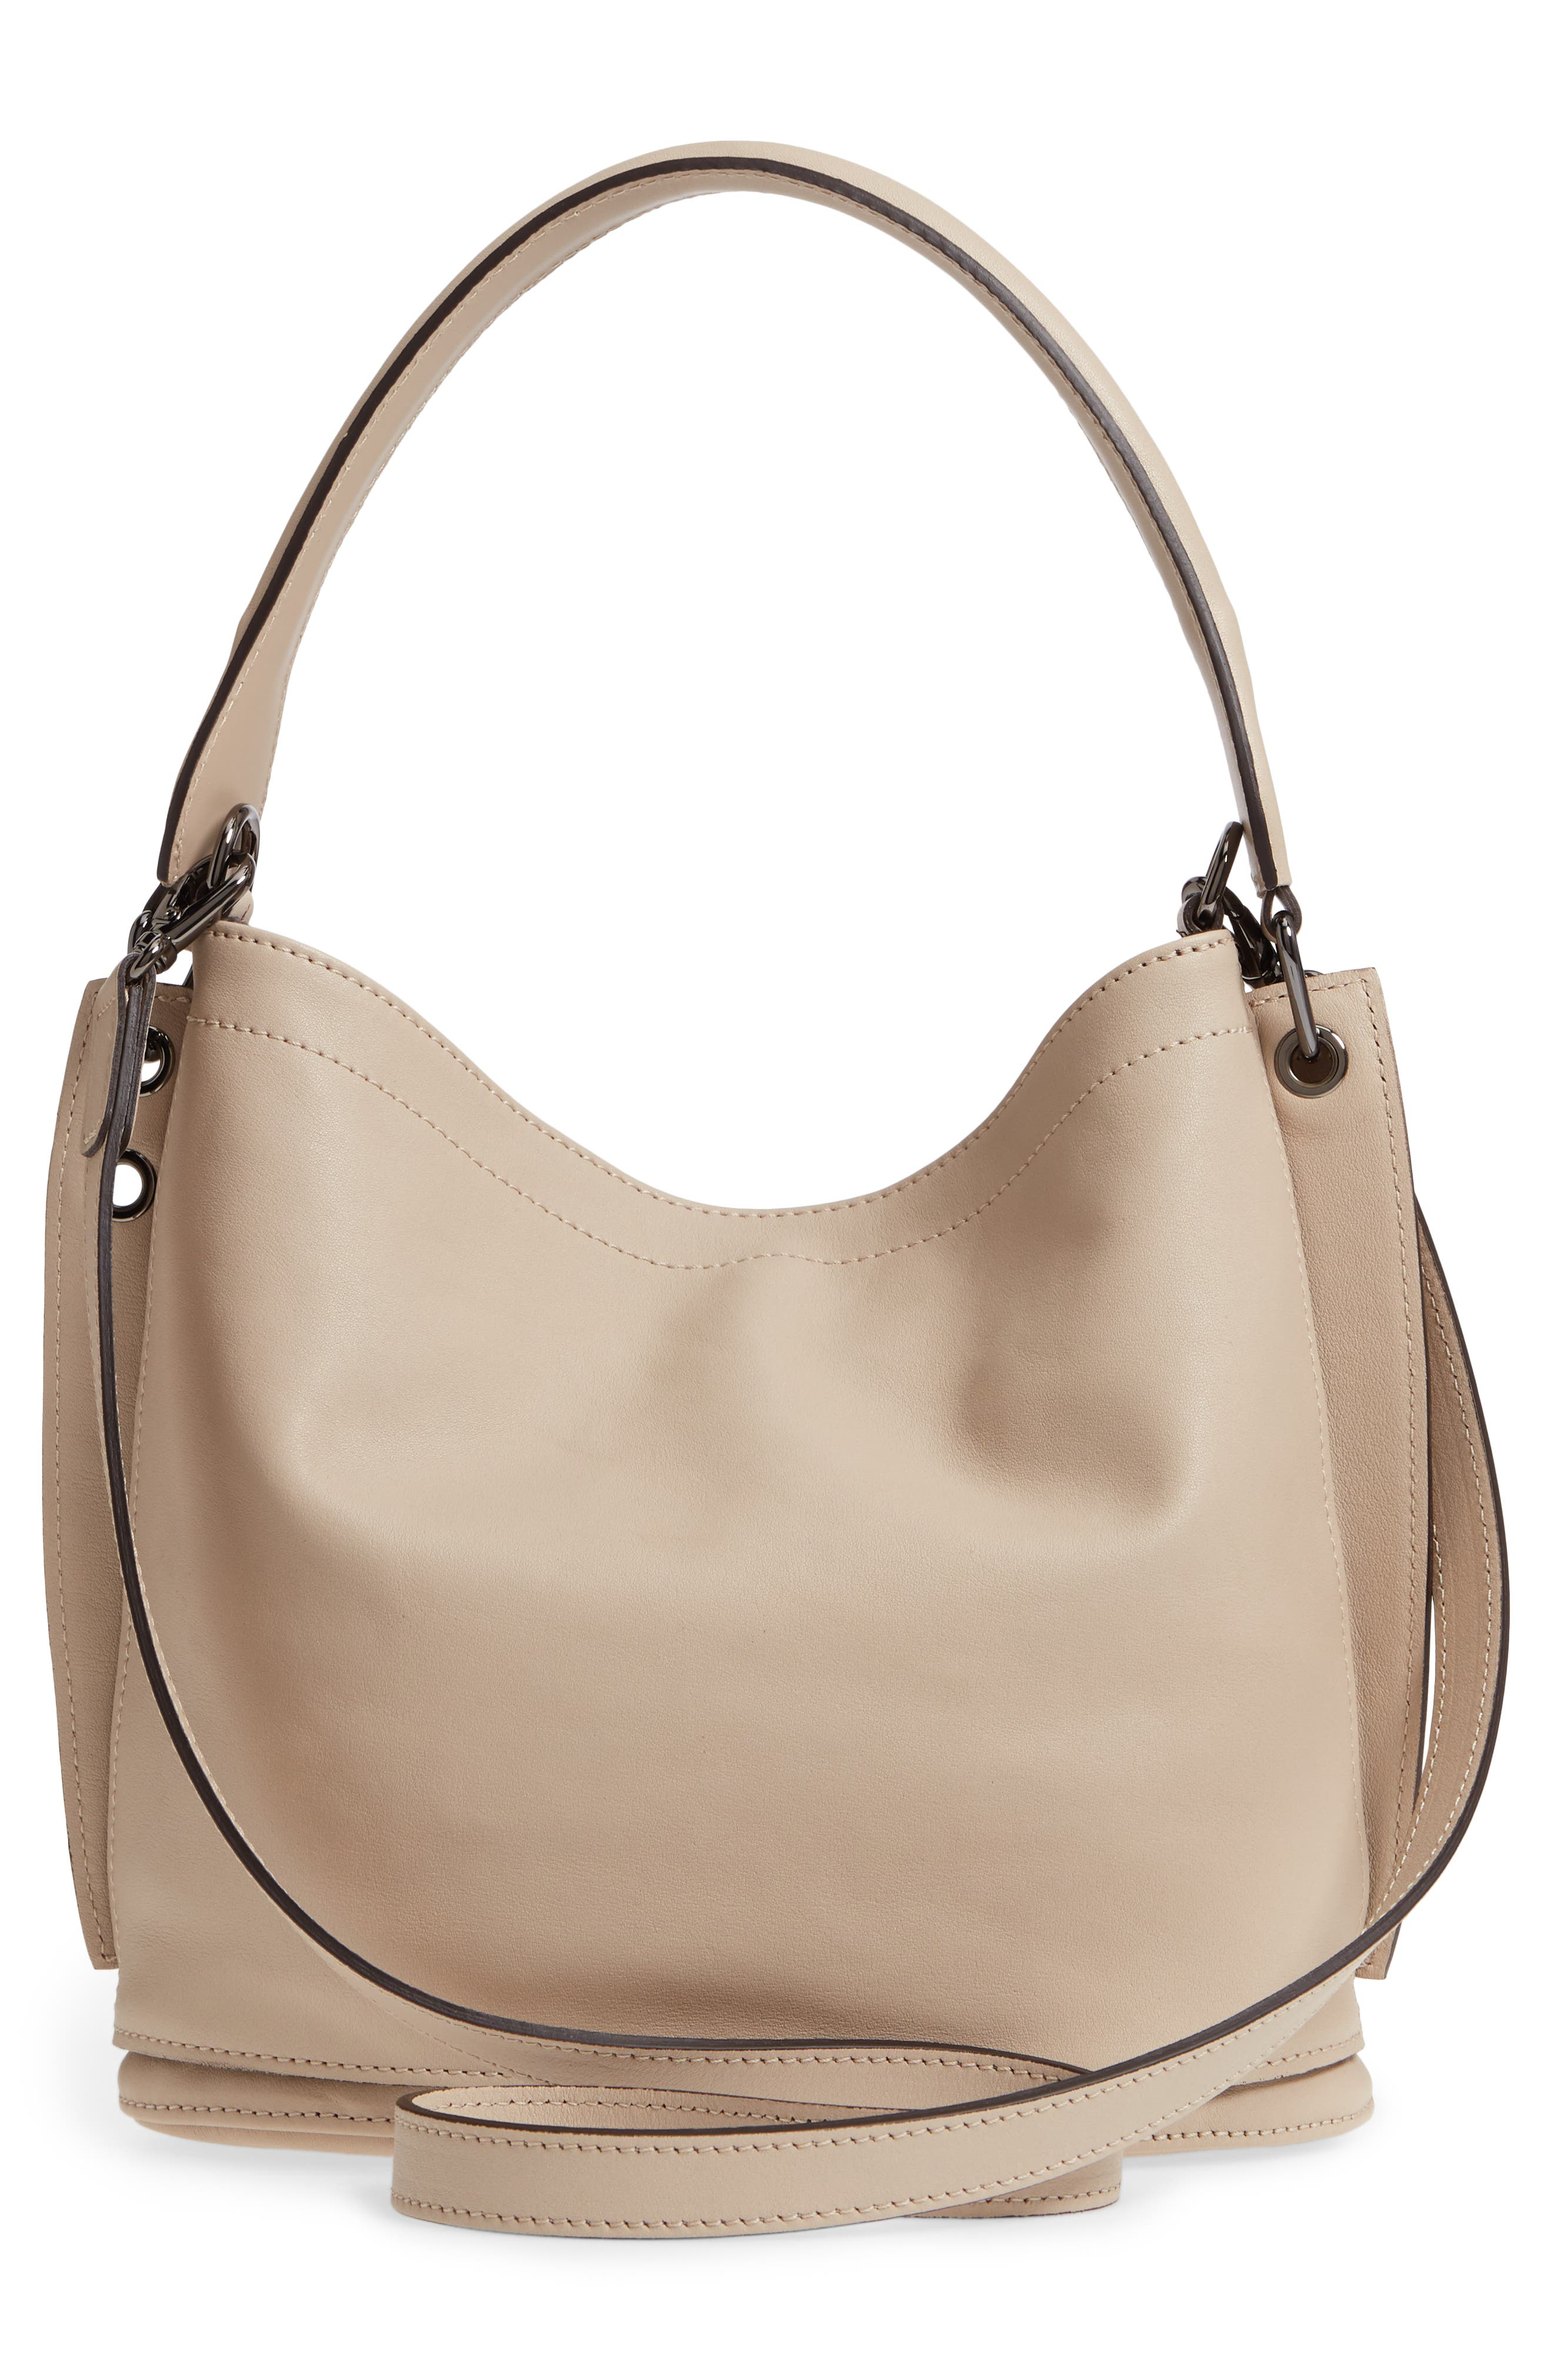 3D Leather Bucket Bag,                             Alternate thumbnail 3, color,                             Clay